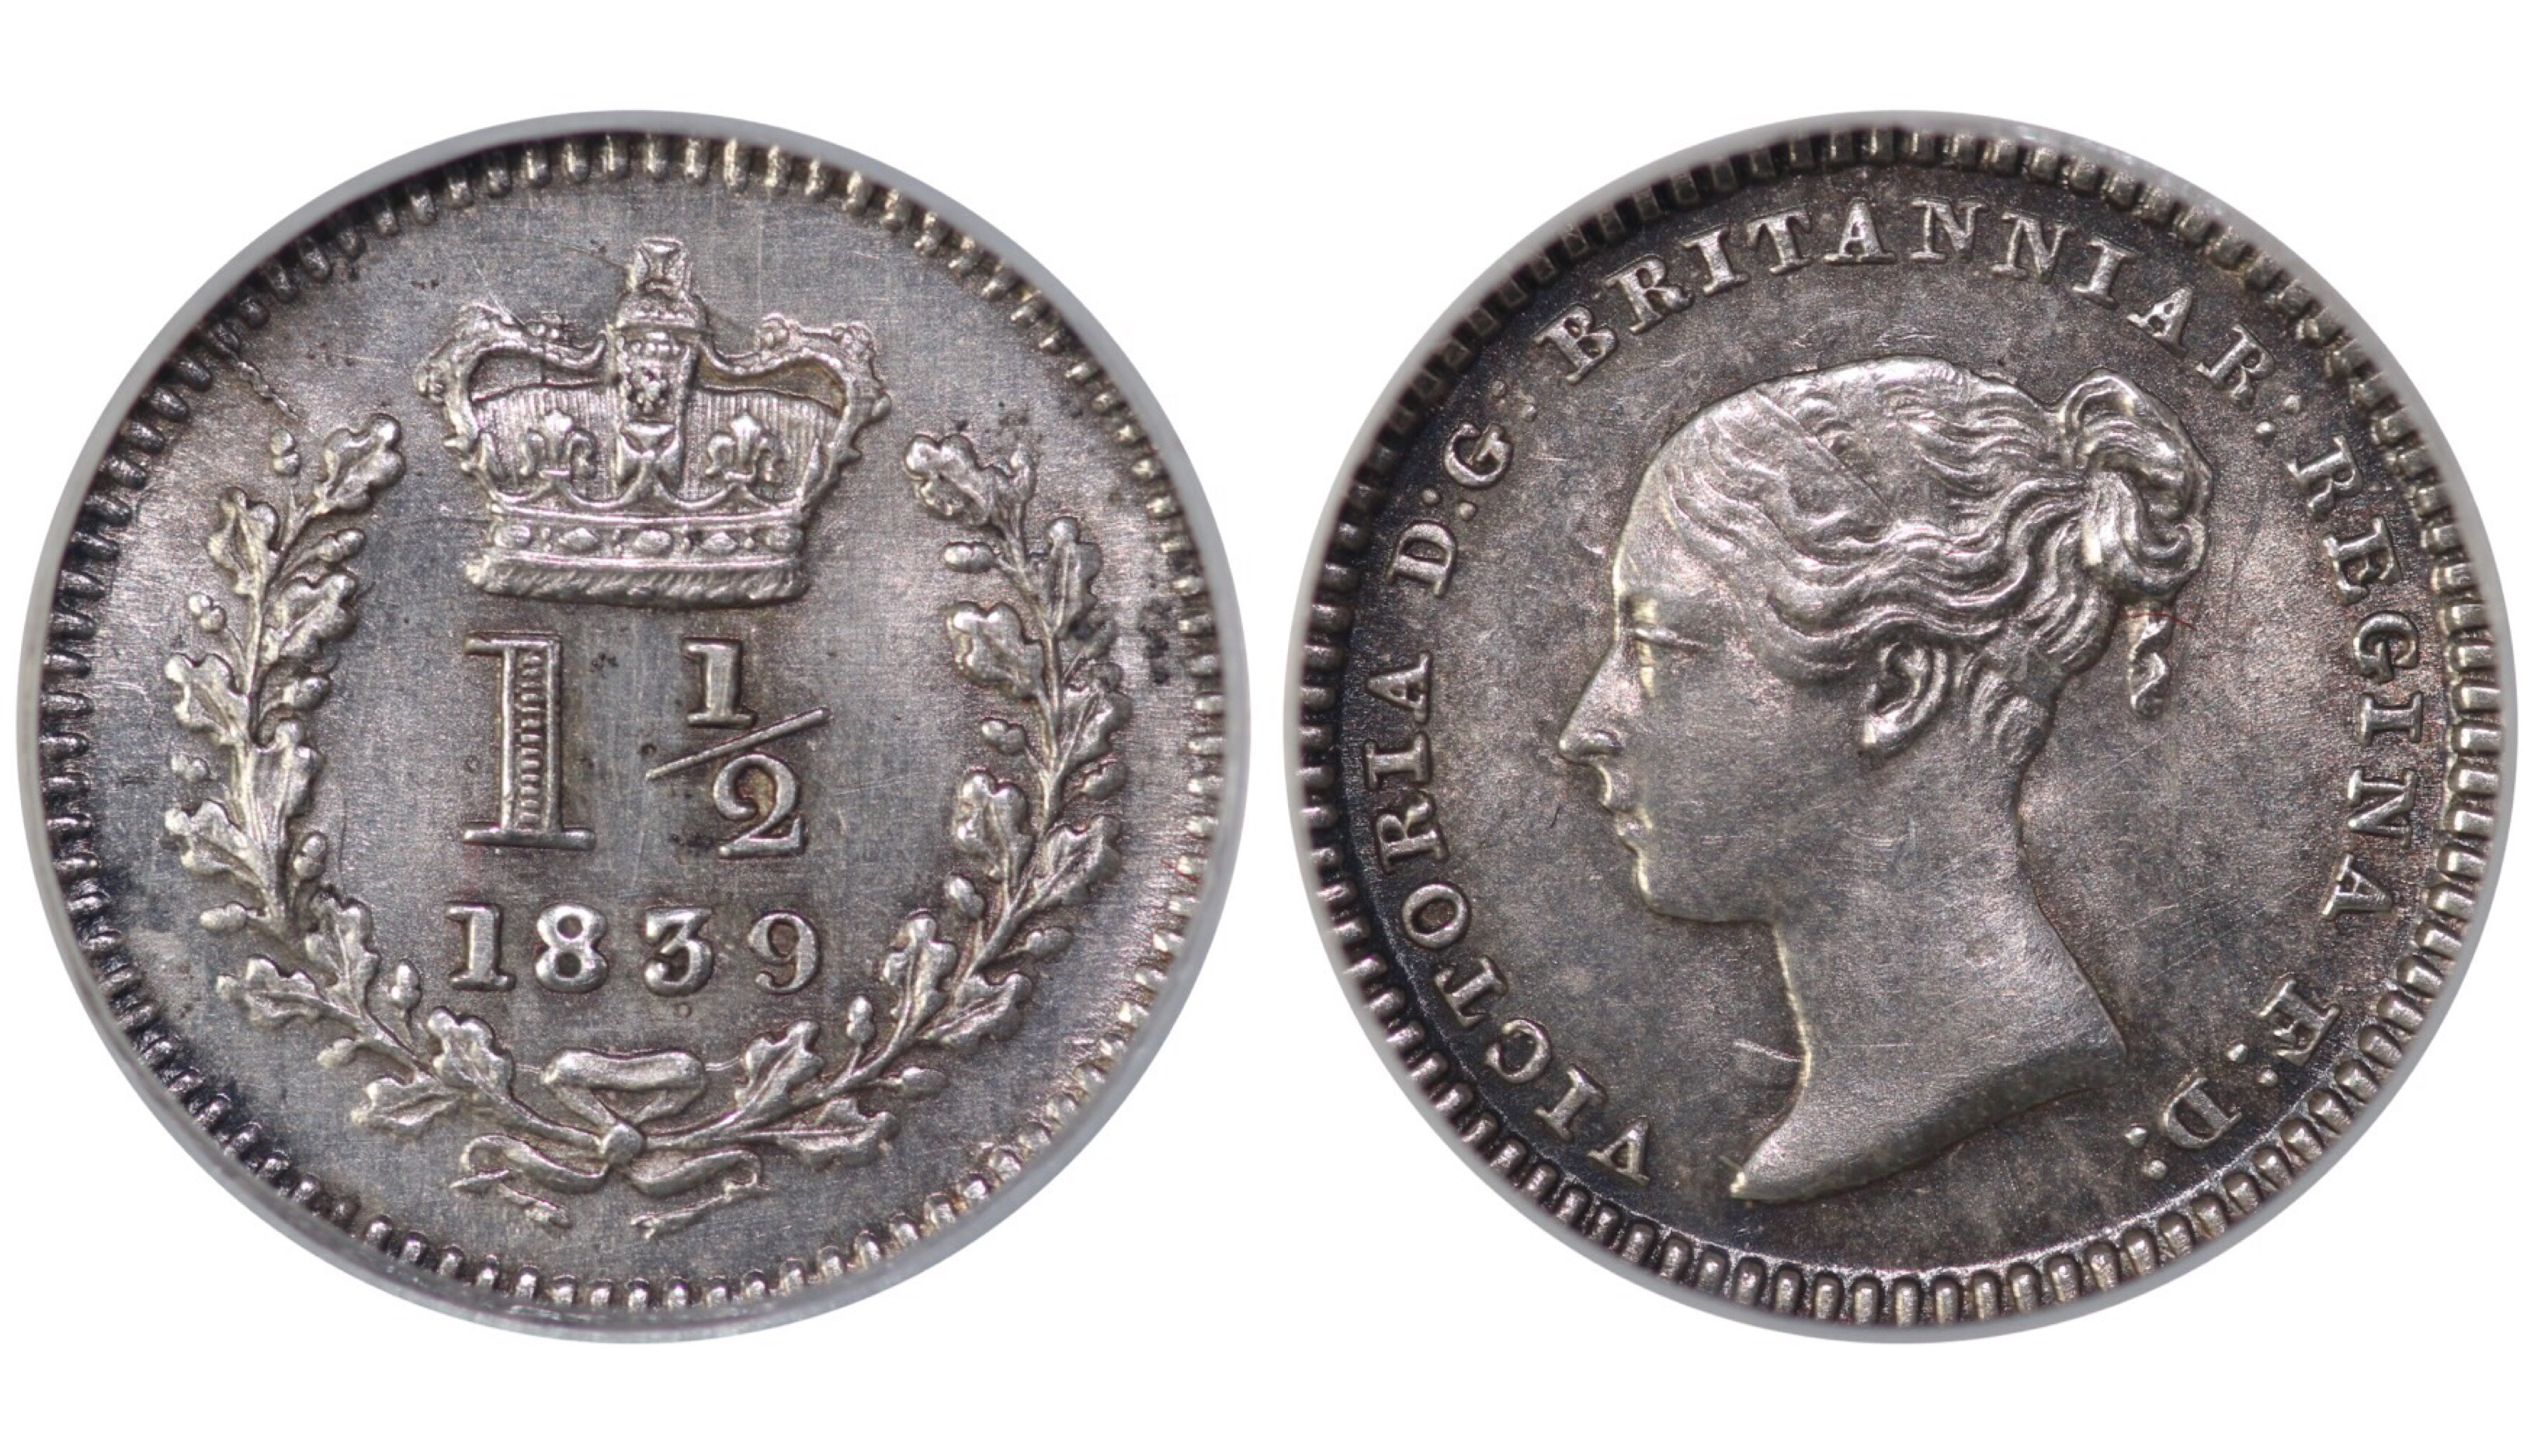 1839 Threehalfpence, Low 9 in date, CGS 65, Victoria, CGS variety 4, UIN 21012